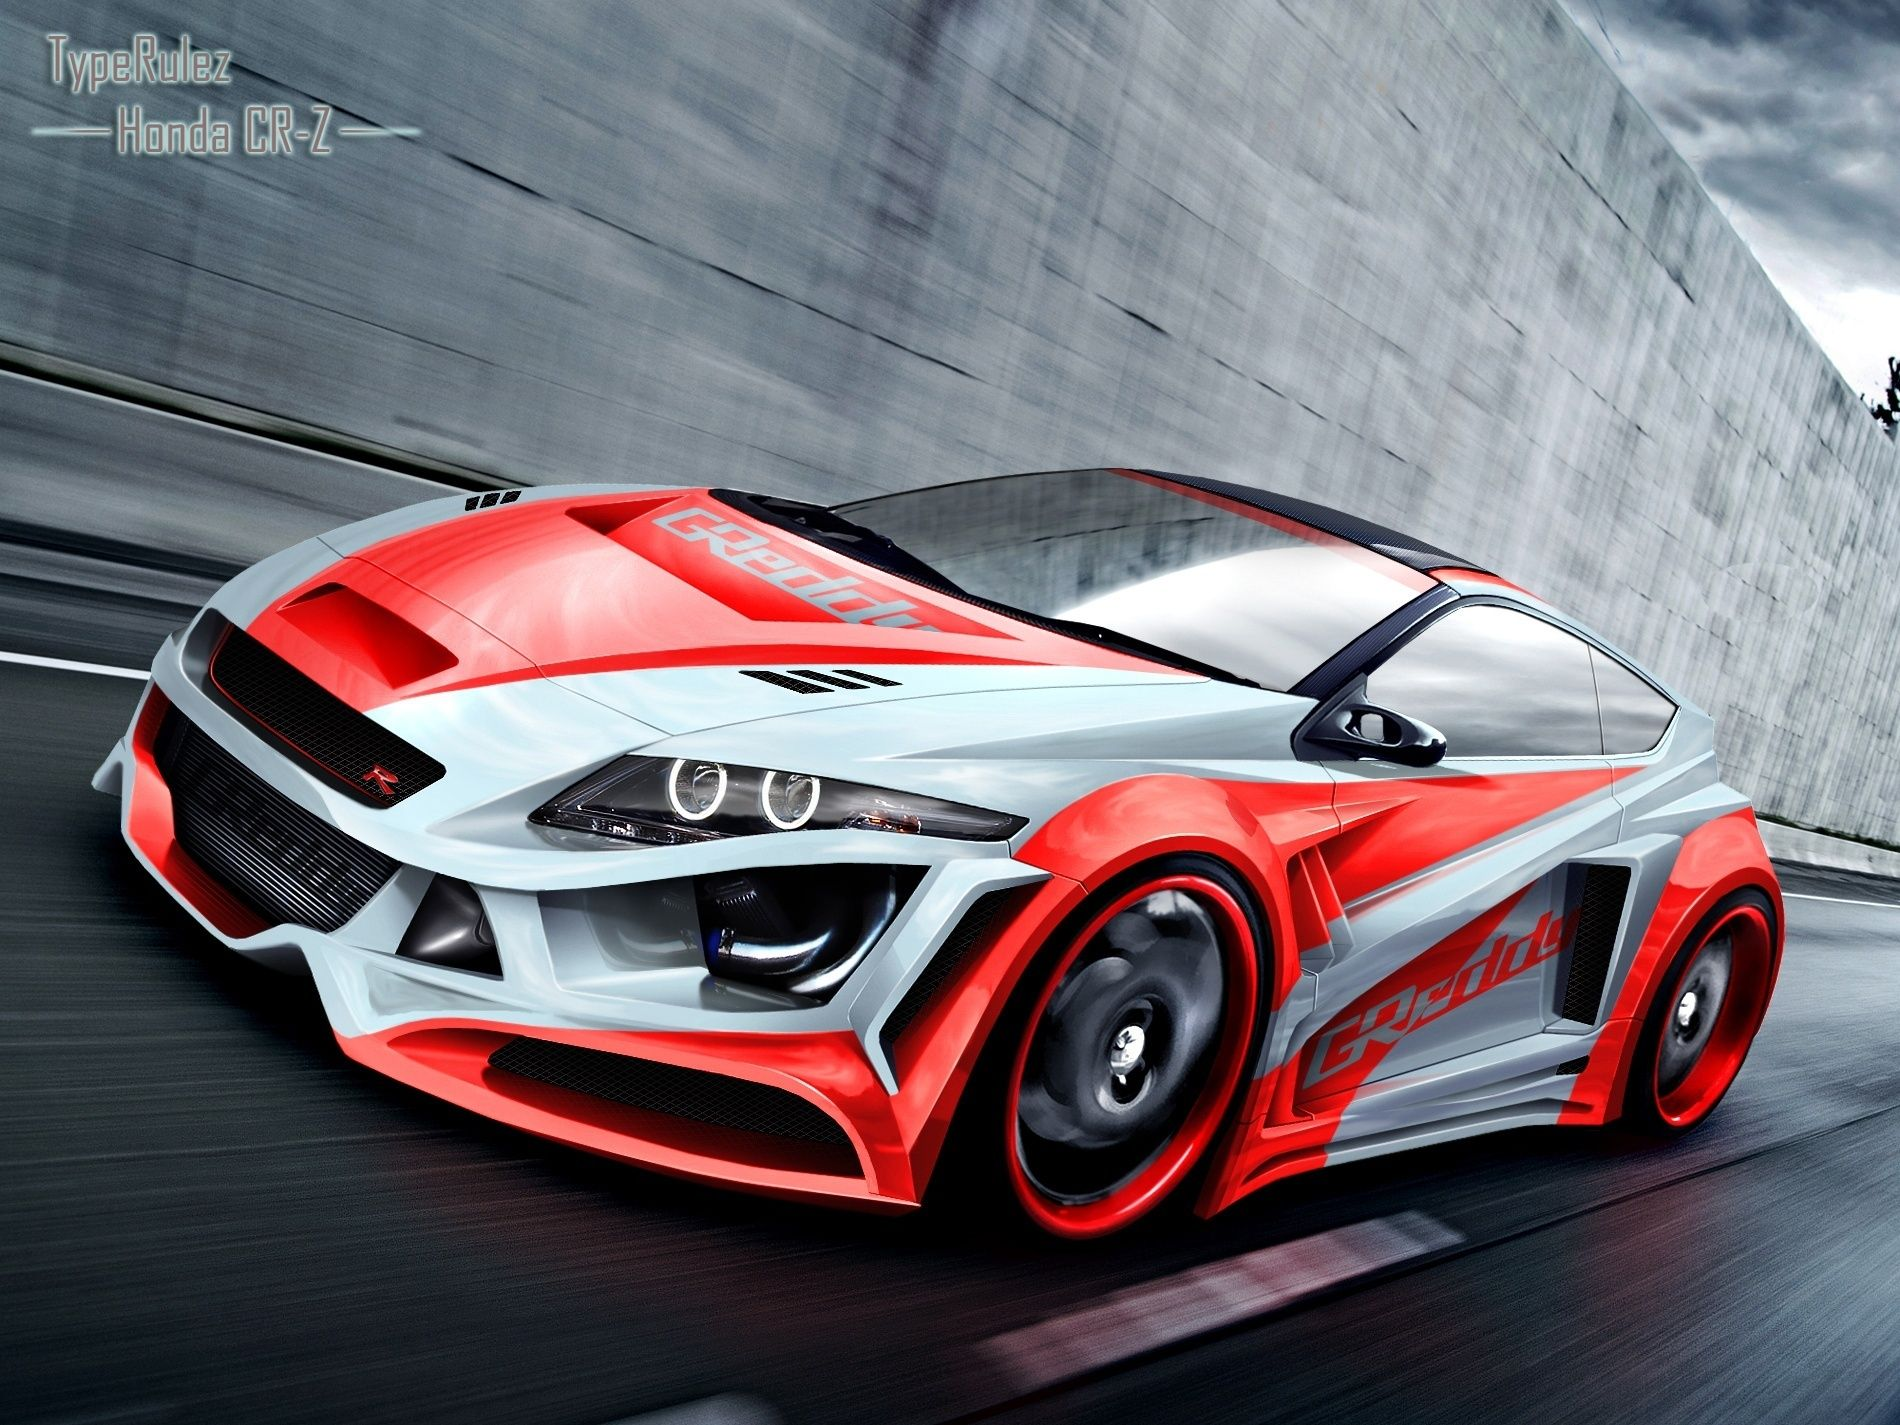 sports cars race car vehicle fast track hurry competition wheel drive transportation system action championship